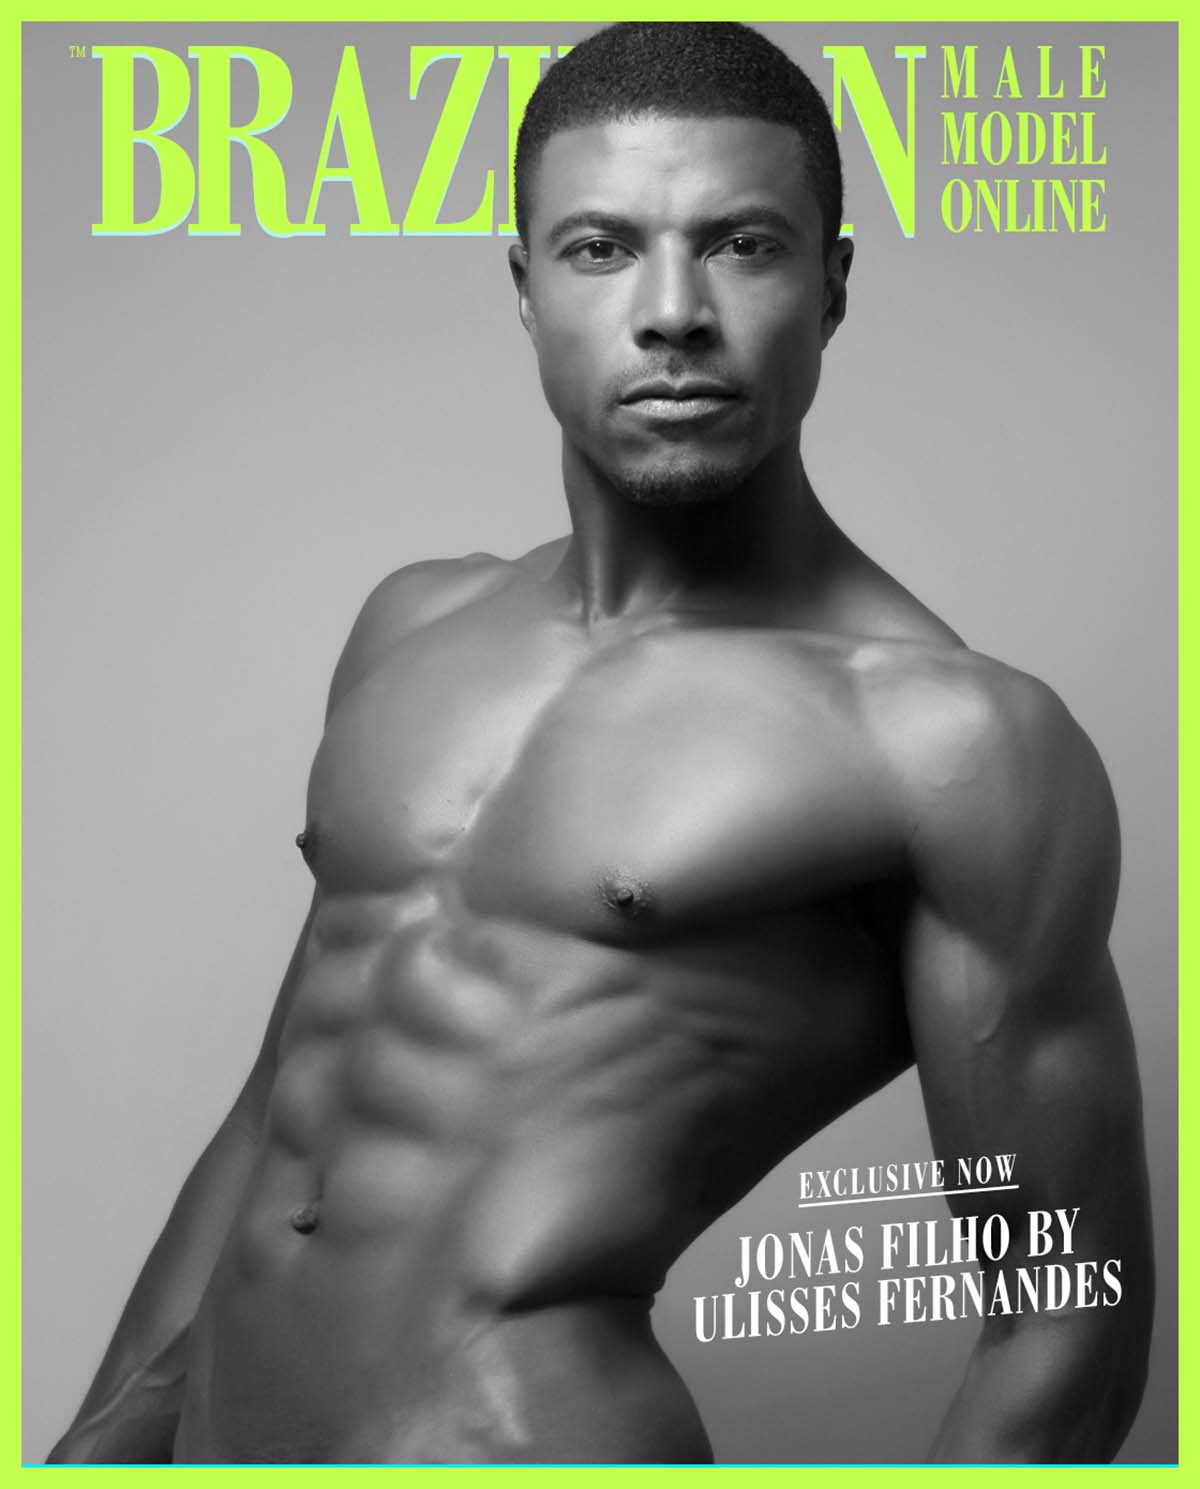 Jonas Filho X Ulisses Fernandes X Brazilian Male Model X YUP MAGAZINE